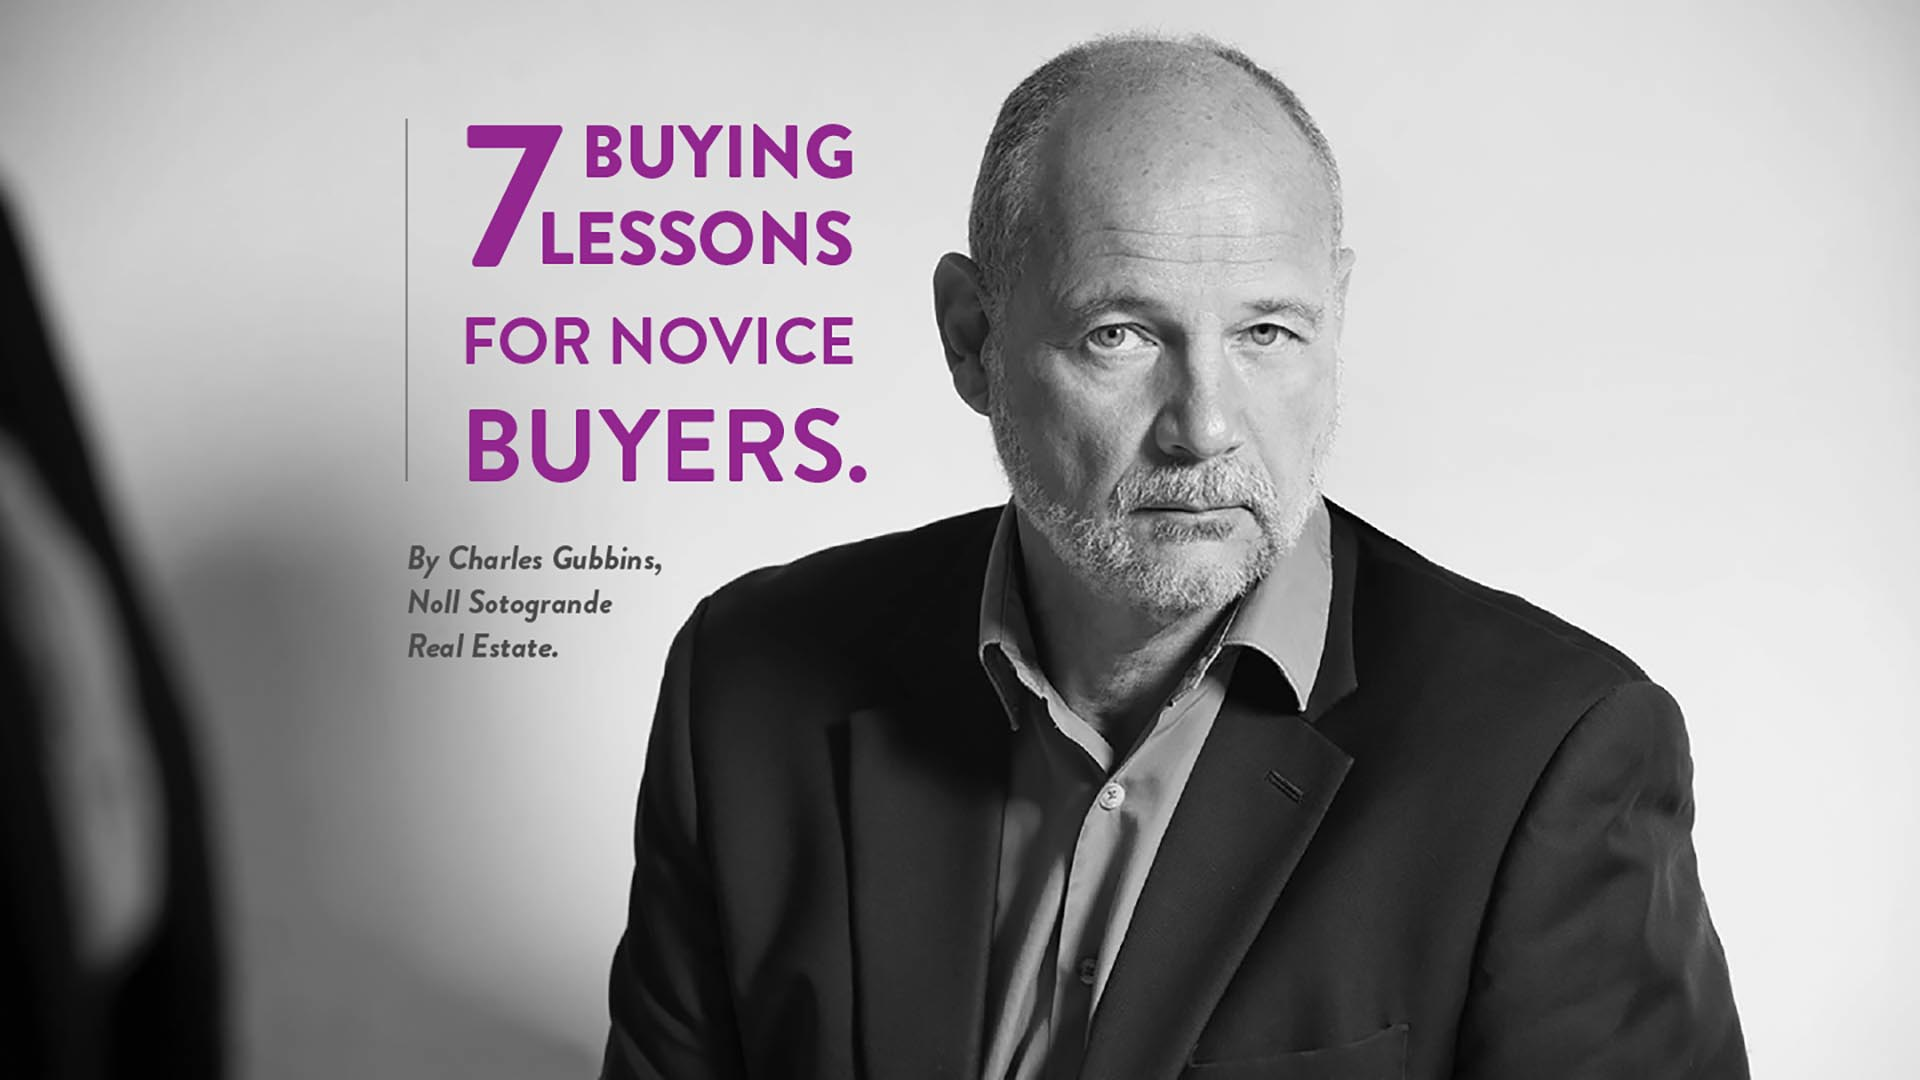 7 Buying Lessons for Novice Buyers in Sotogrande - By Charles Gubbins